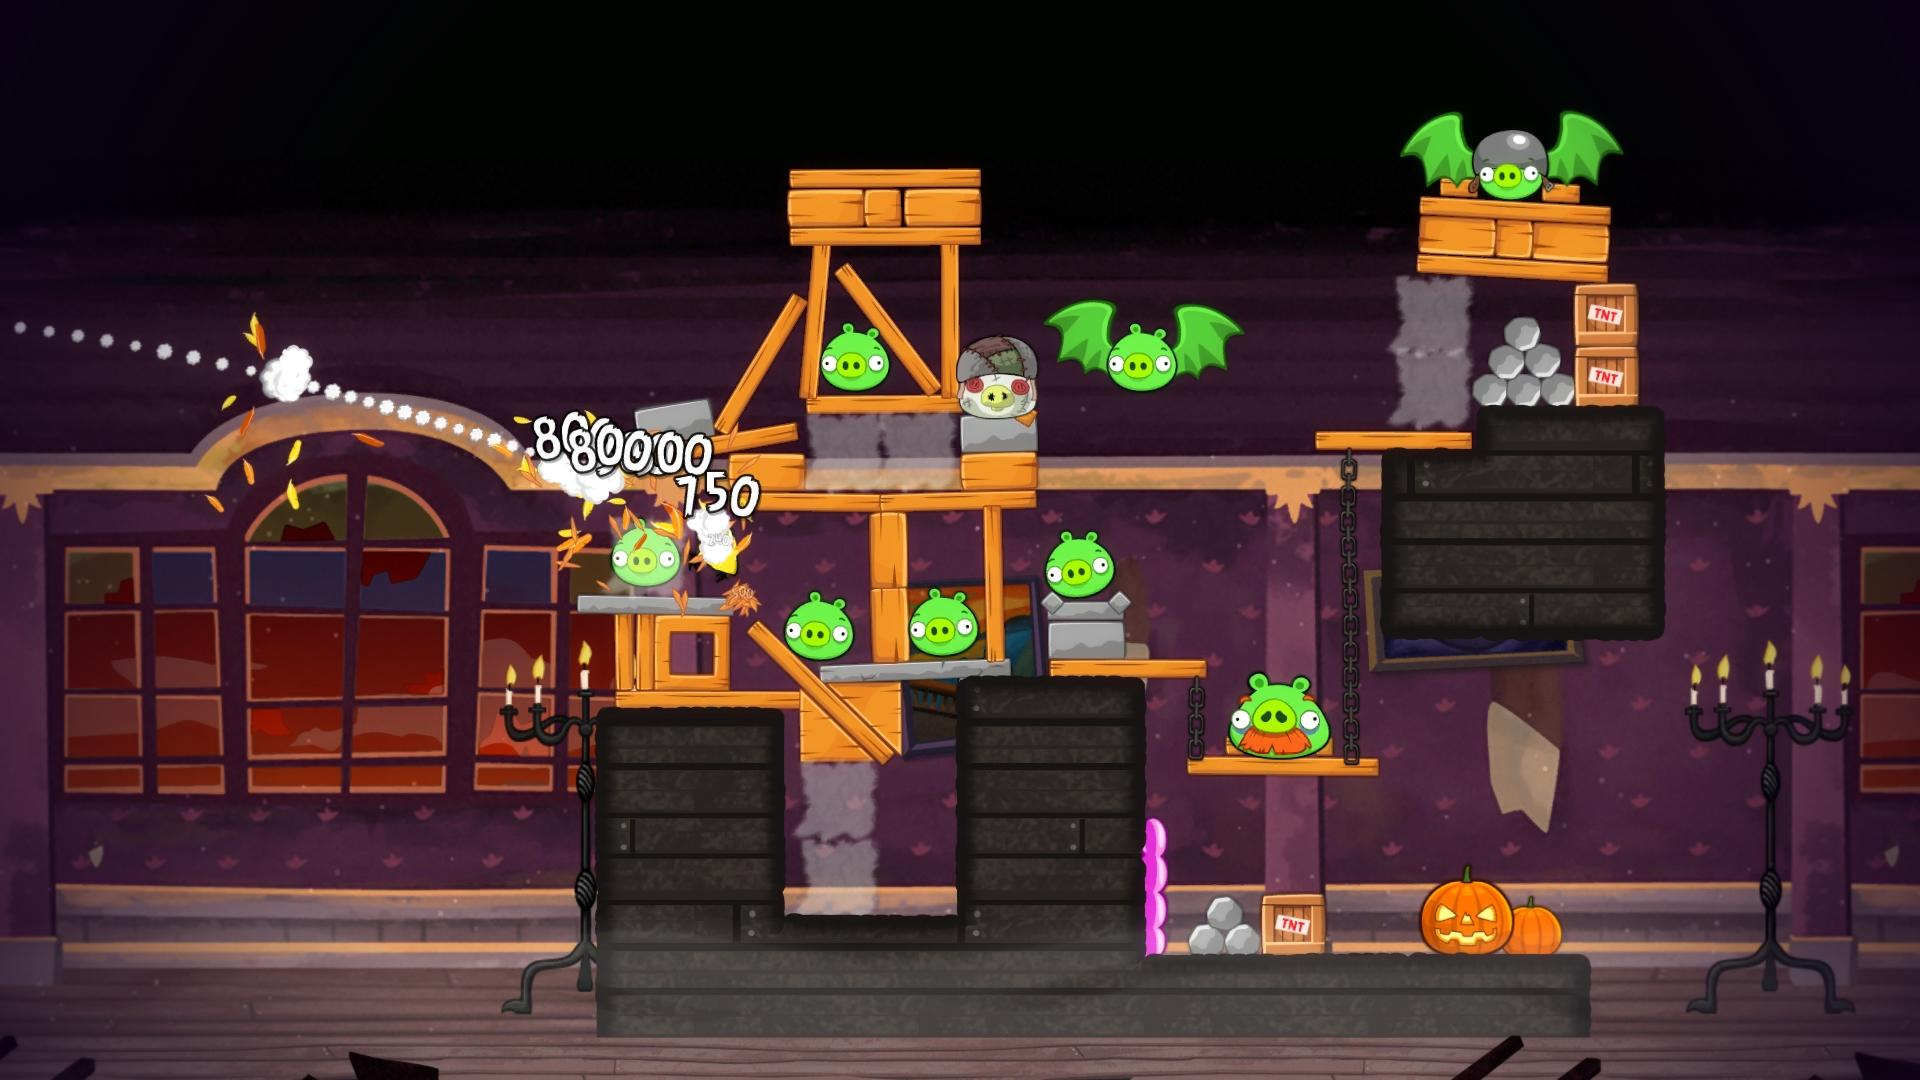 Screenshot of Angry Birds video game with a dark background and an Angry Bird crashing into a wooden tower holding up green pigs.